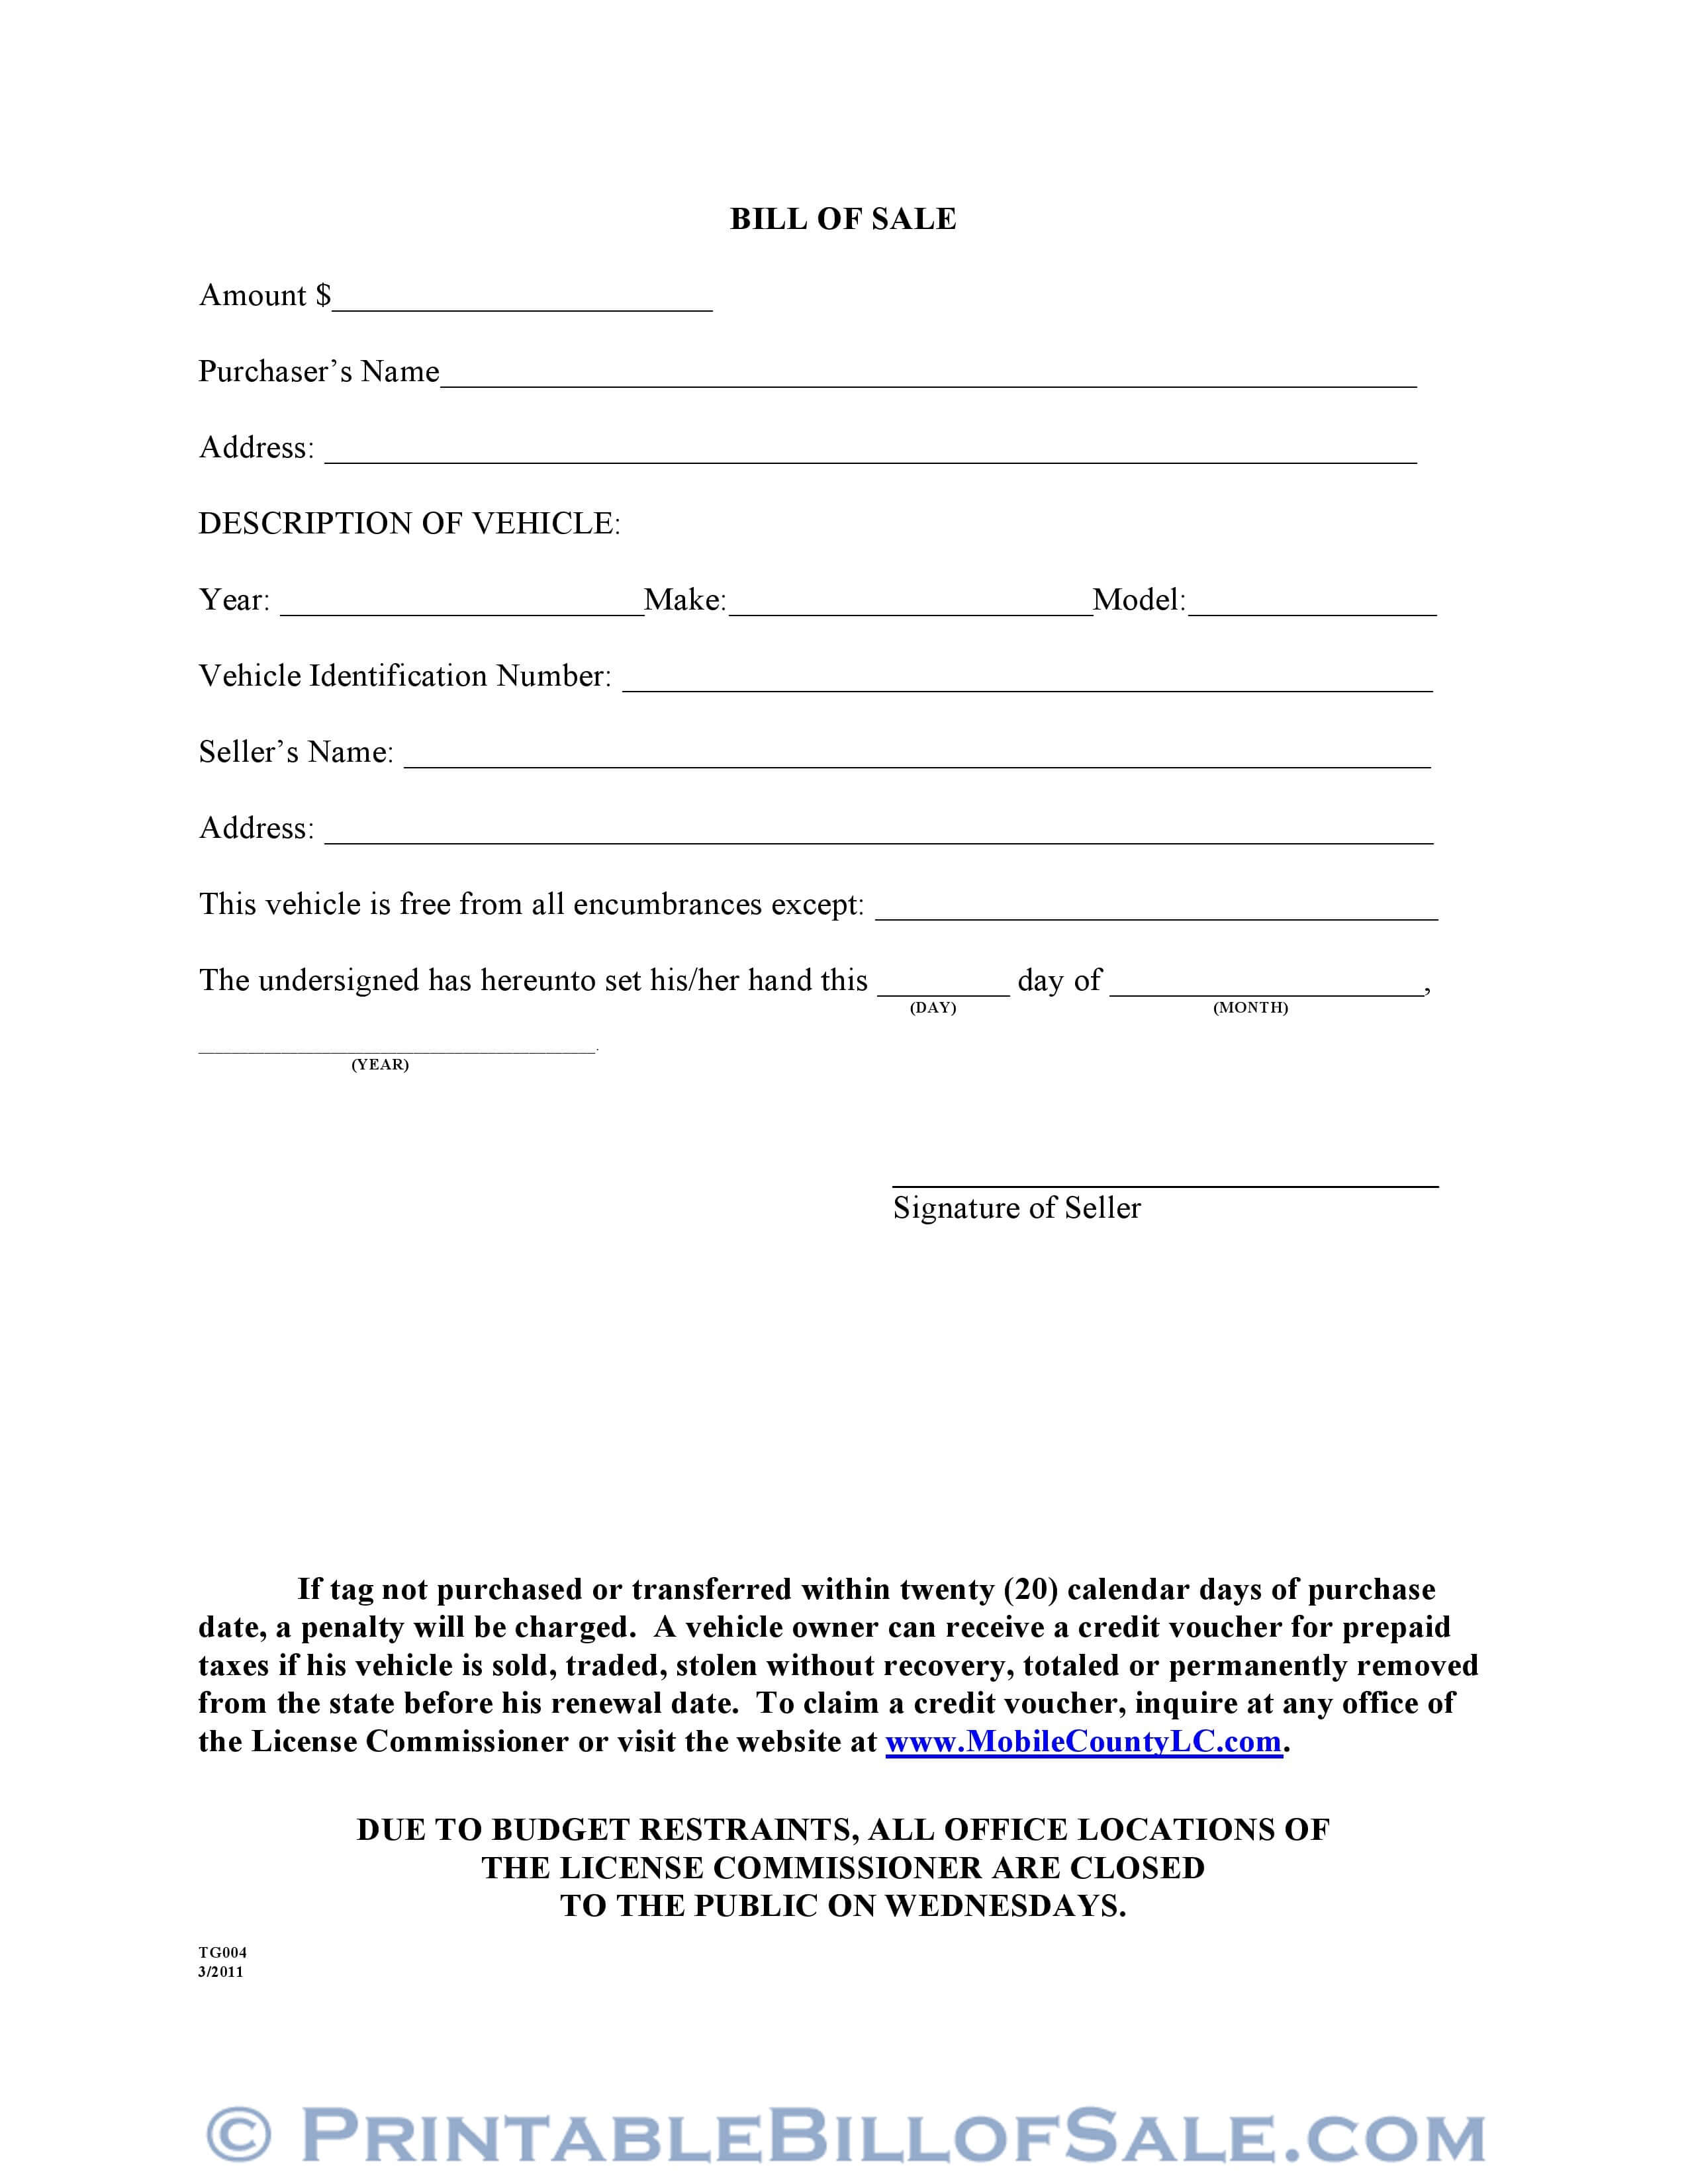 Free Mobile County Alabama Motor Vehicle Bill Of Sale Form with Car Bill Of Sale Word Template